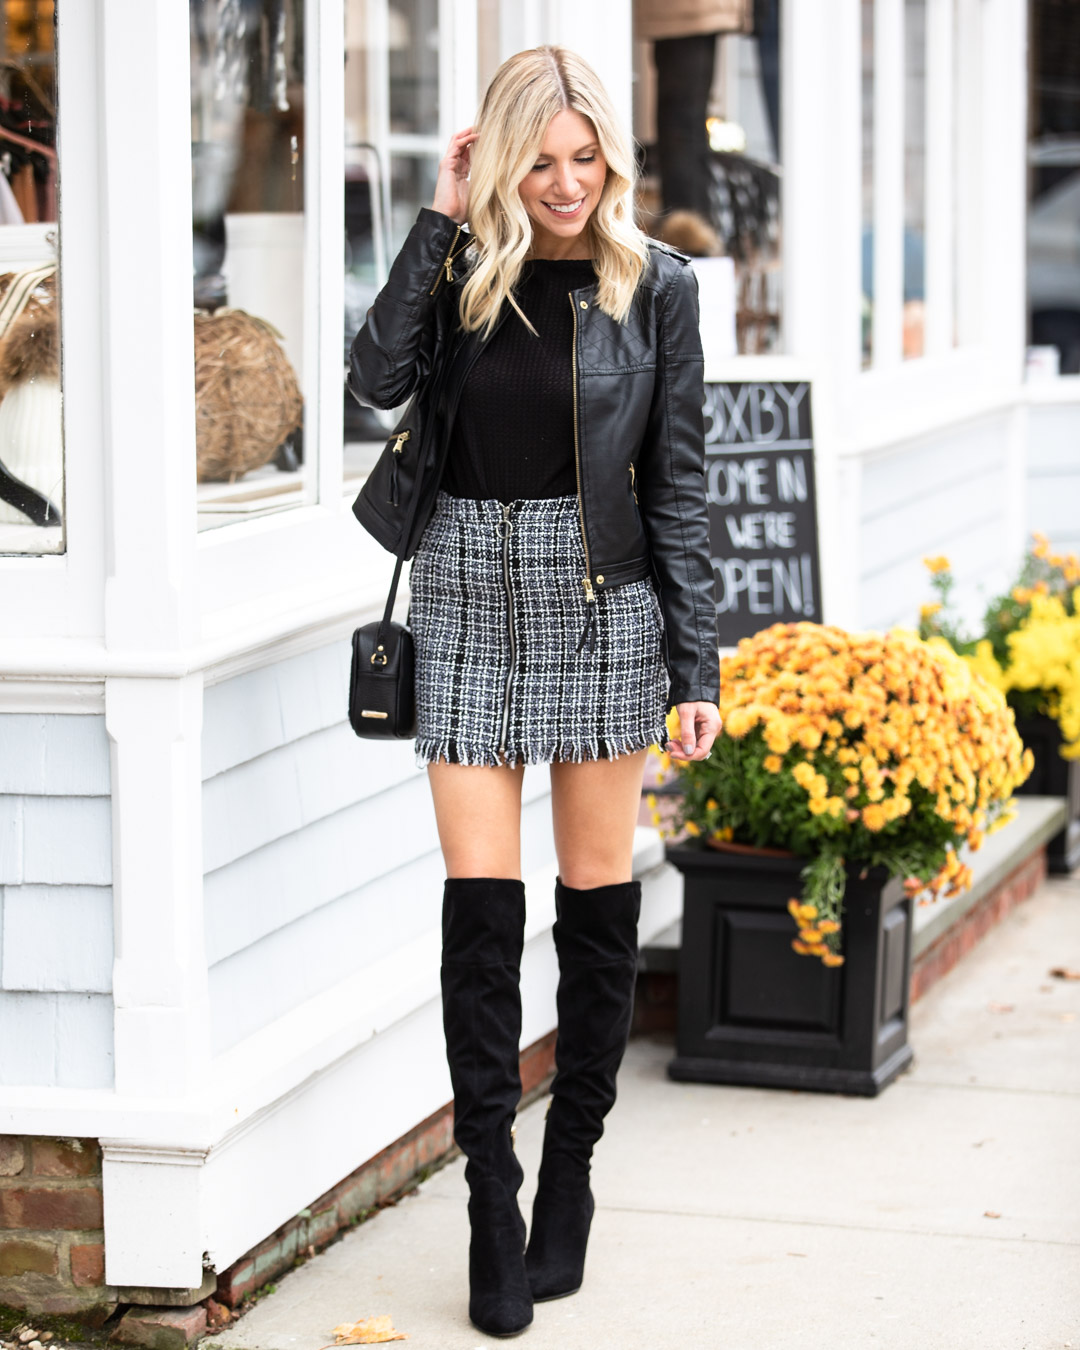 Shein Tweed Skirt & Over the Knee Boots